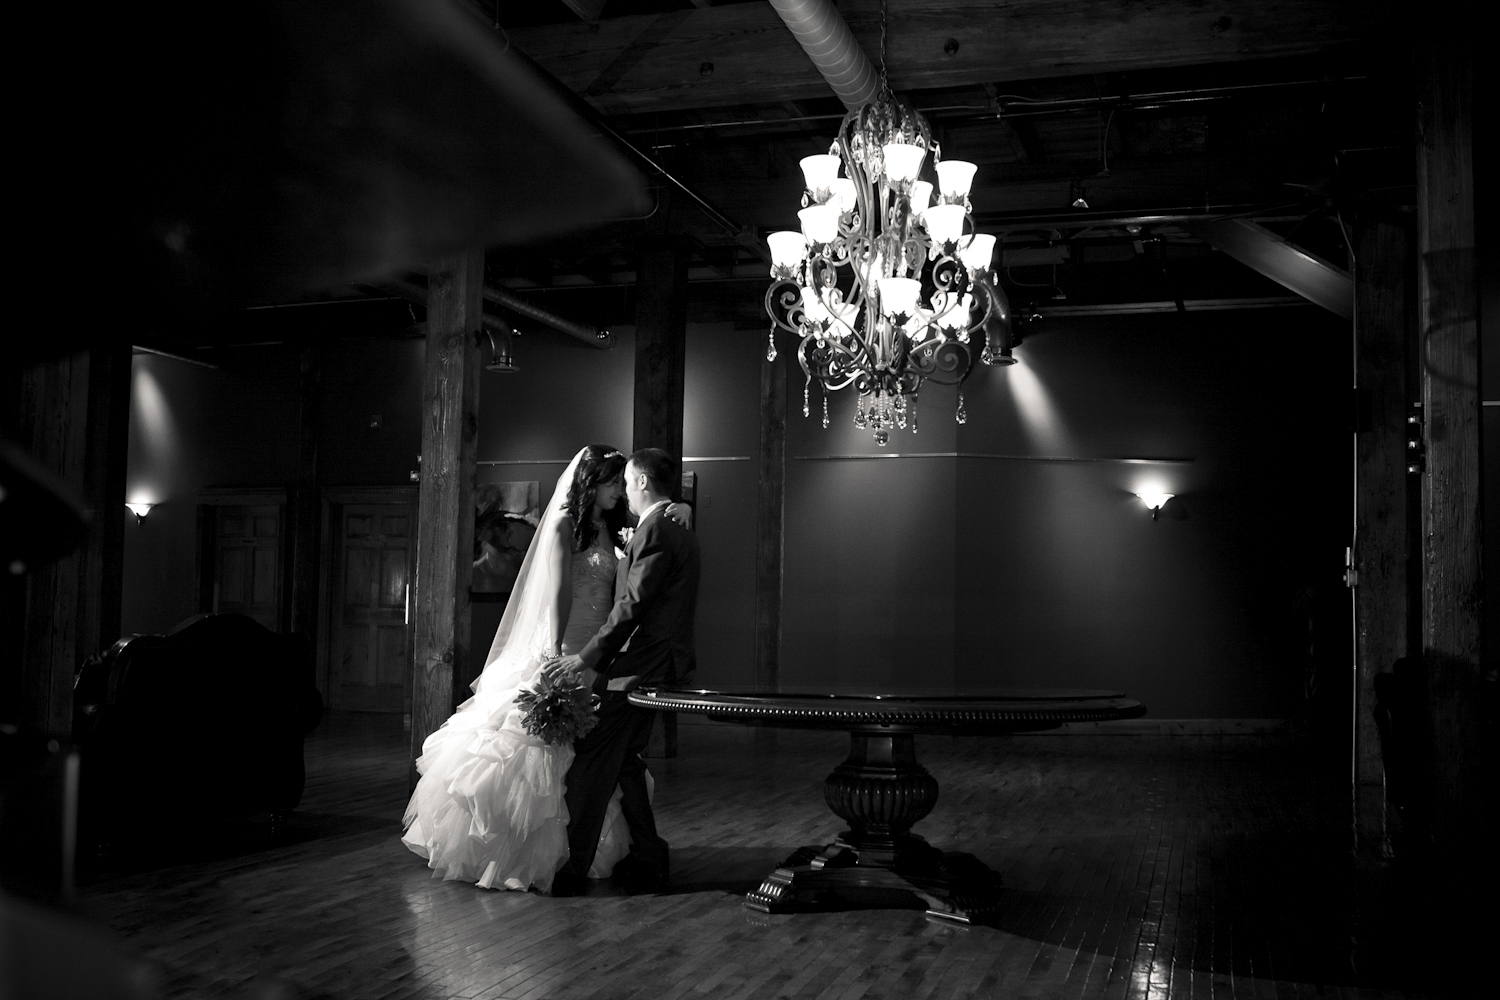 Indianapolis-Indiana-Maveris-Wedding-Photographer-Crowes-Eye-Photography-Bride-and-Groom-Moment.jpg